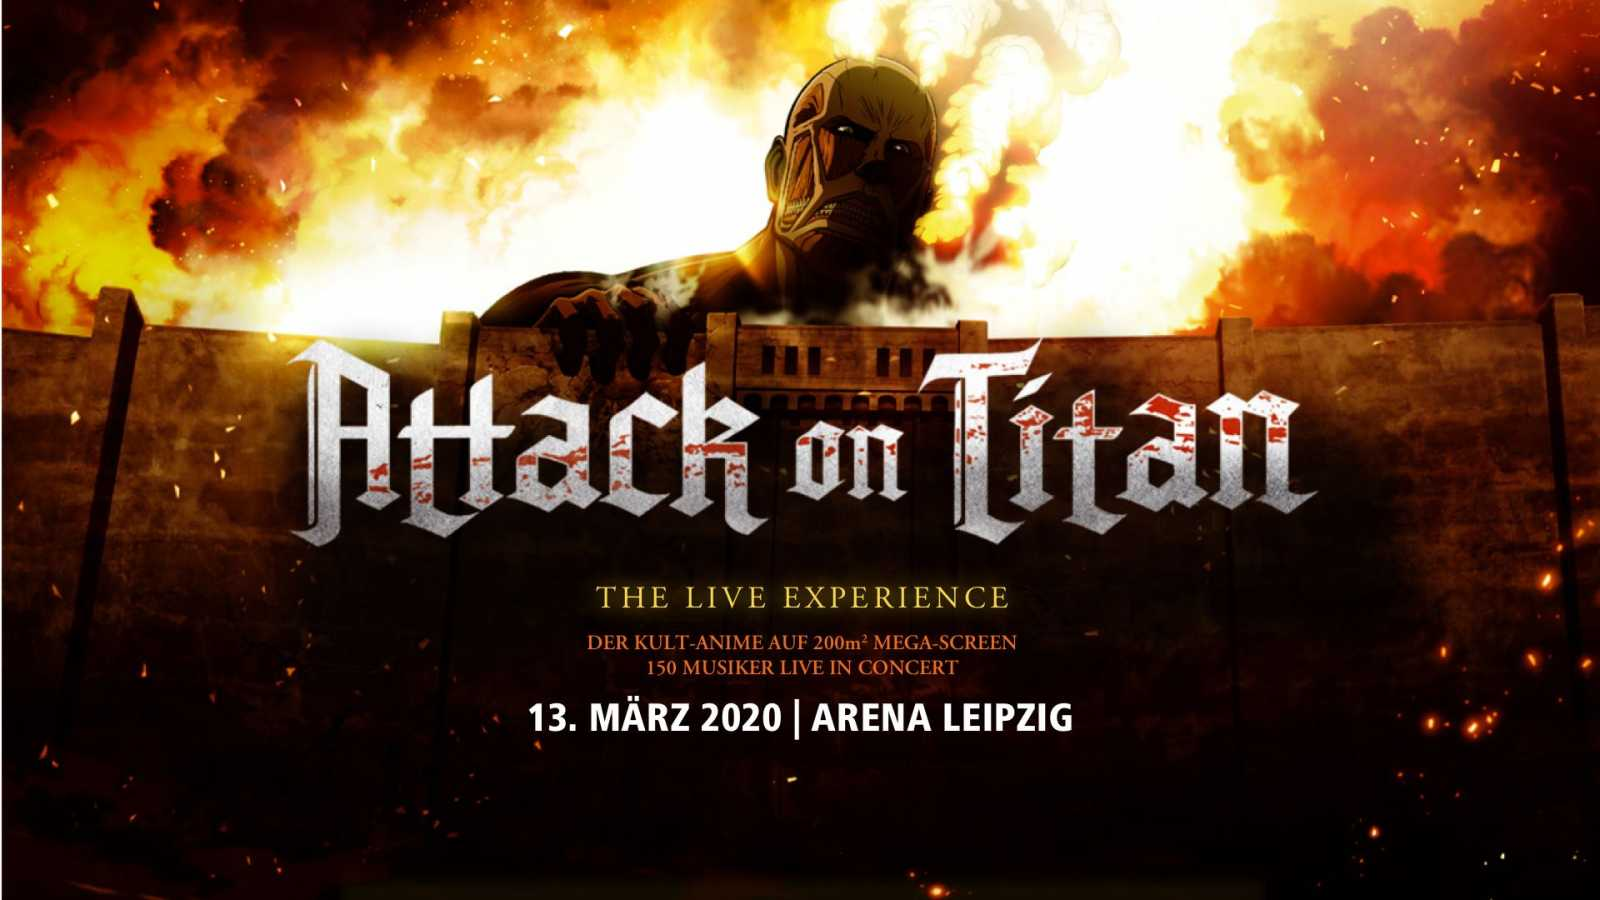 Gewinnt 2 Freikarten für Attack On Titan - The Live Experience © HK / AOT all rights reserved.